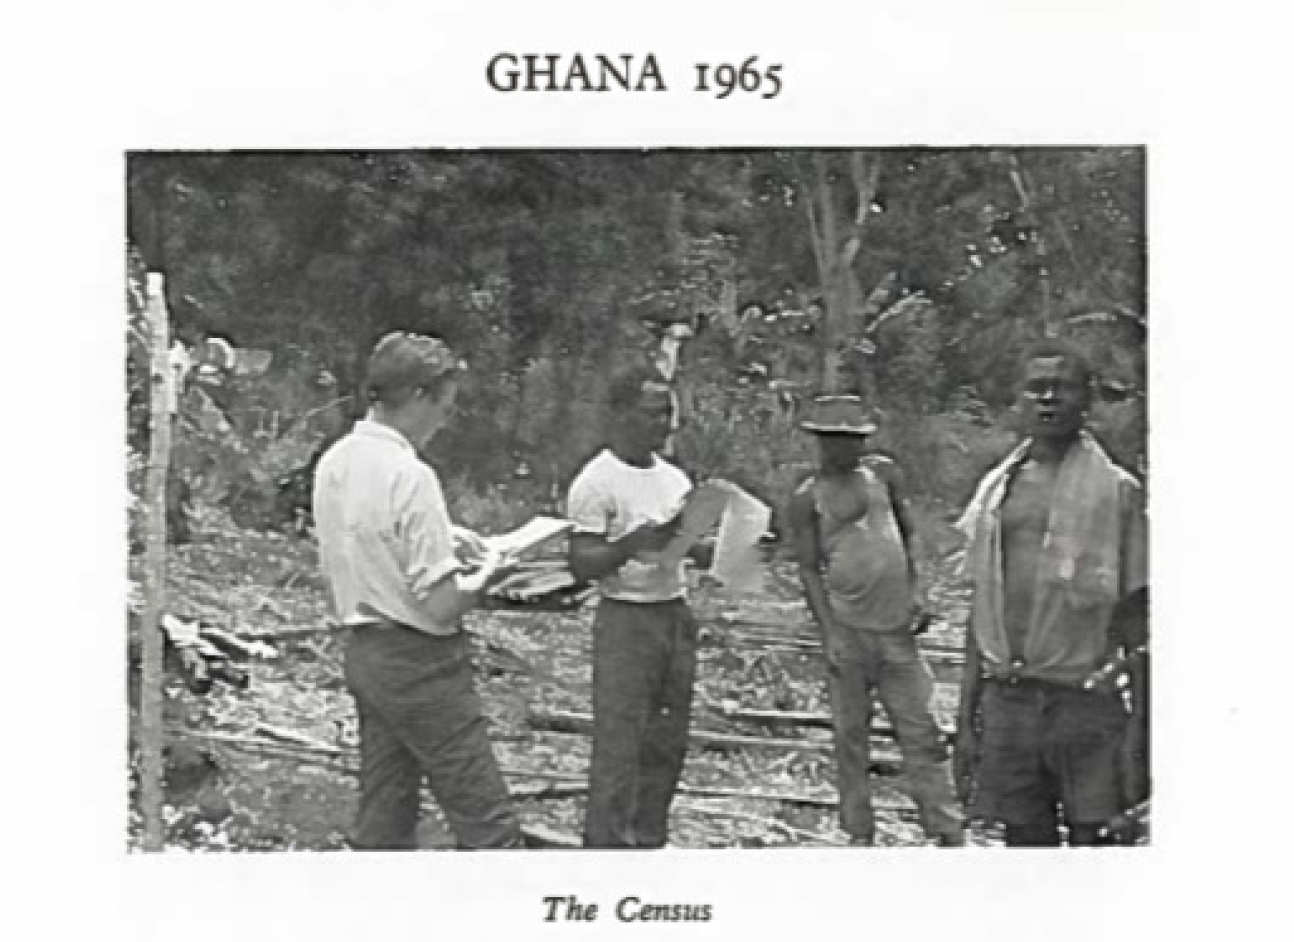 1965 Ghana Expedition